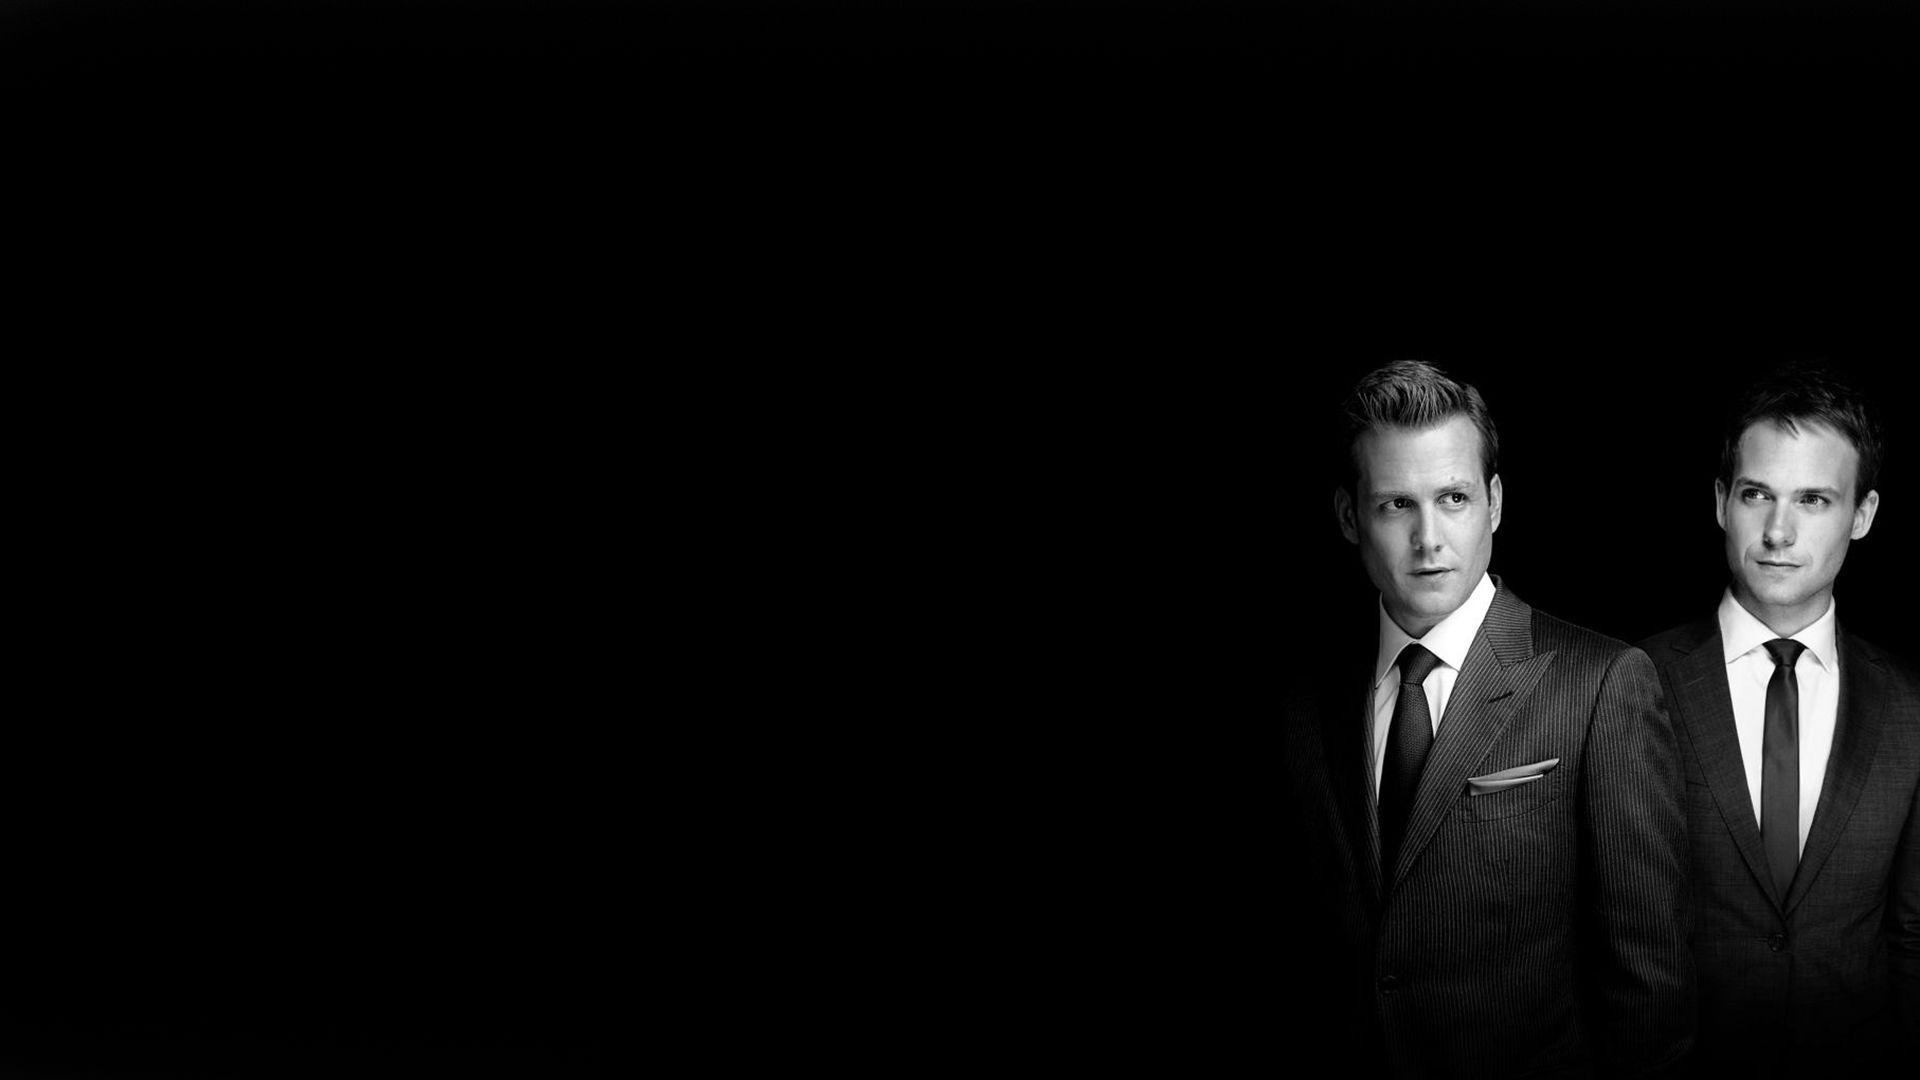 harvey specter quotes wallpapers wallpaper cave